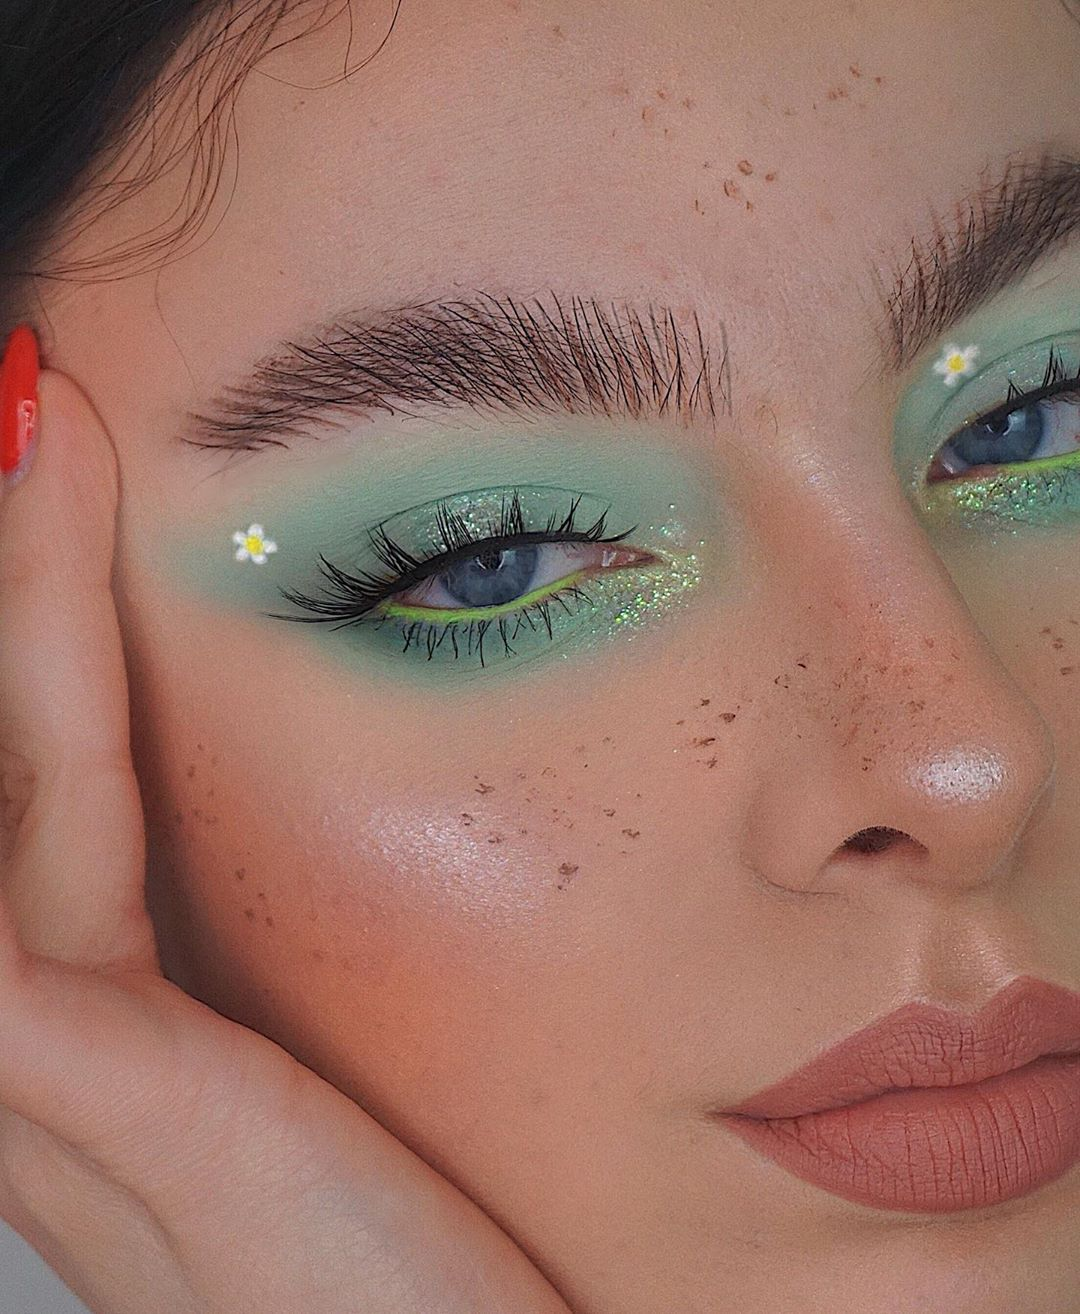 """Photo of Anna Jantos 🌻 on Instagram: """"🌿daisy meadow 🌿 _______________________ products used: @hudabeauty mint pastel obsession palette & sasha lashes  @fentybeauty wet tshirt &…"""""""